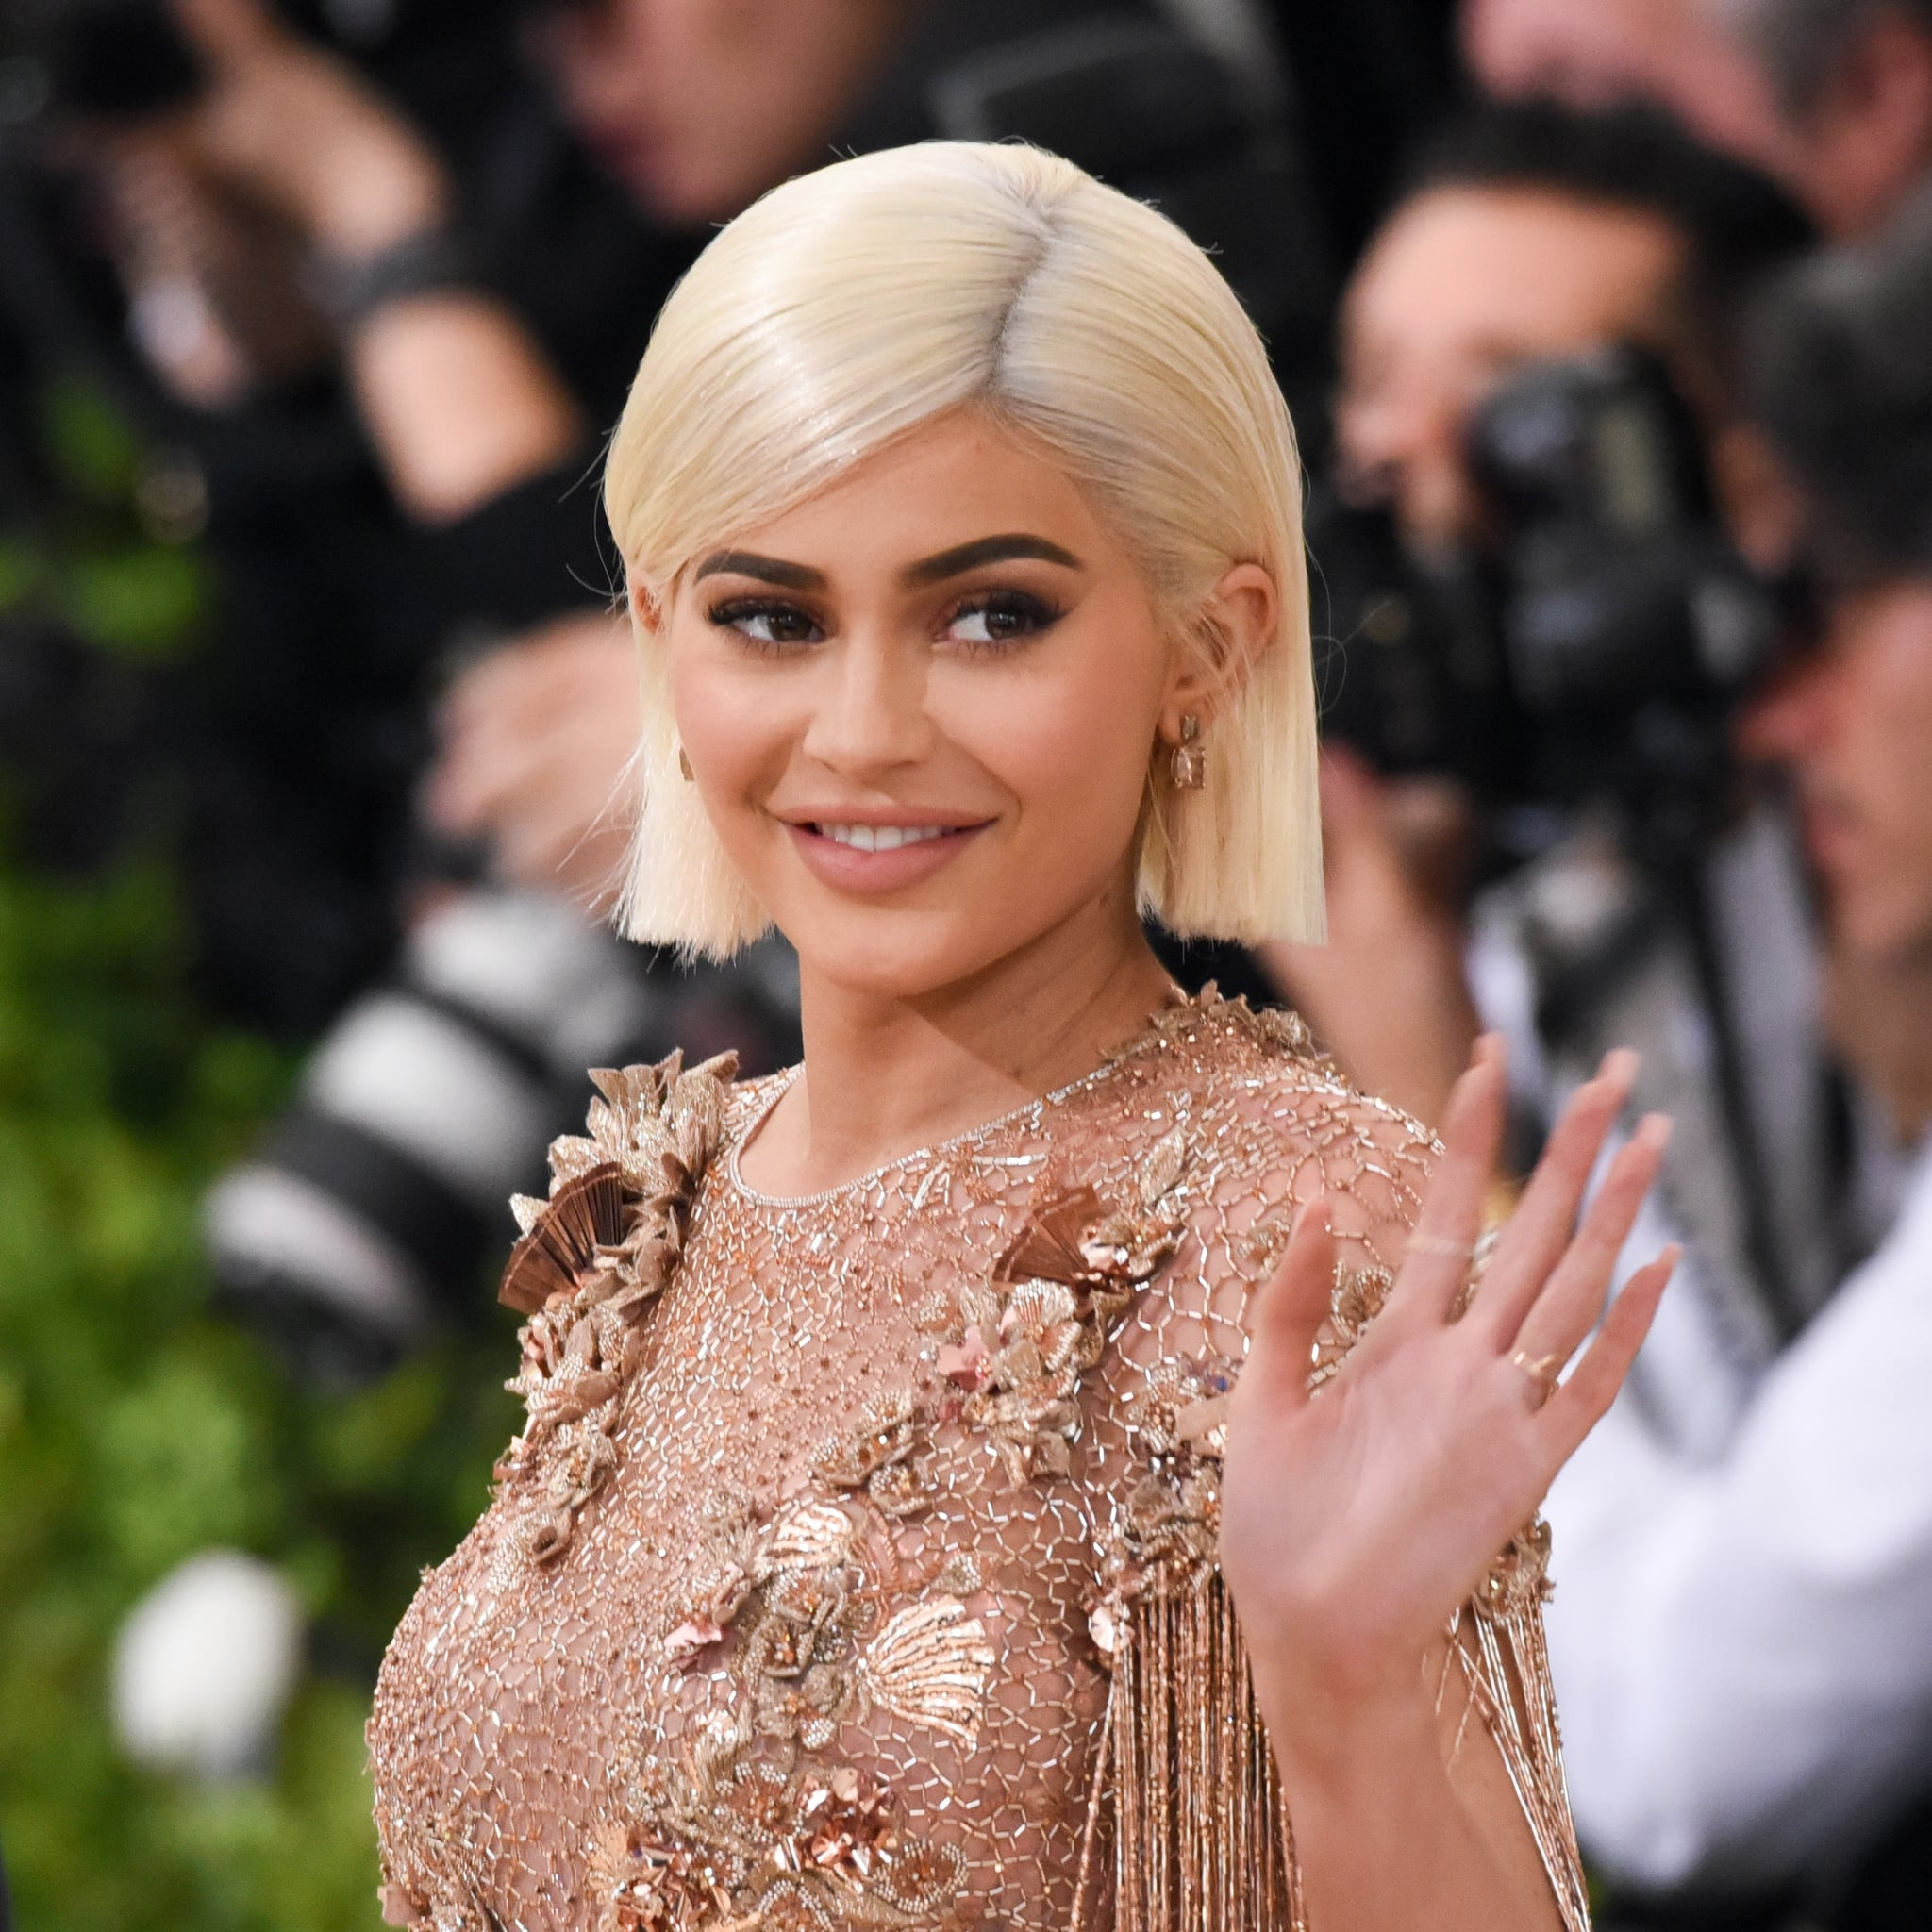 Pregnant Kylie Jenner Is Ready For Daughter's Arrival